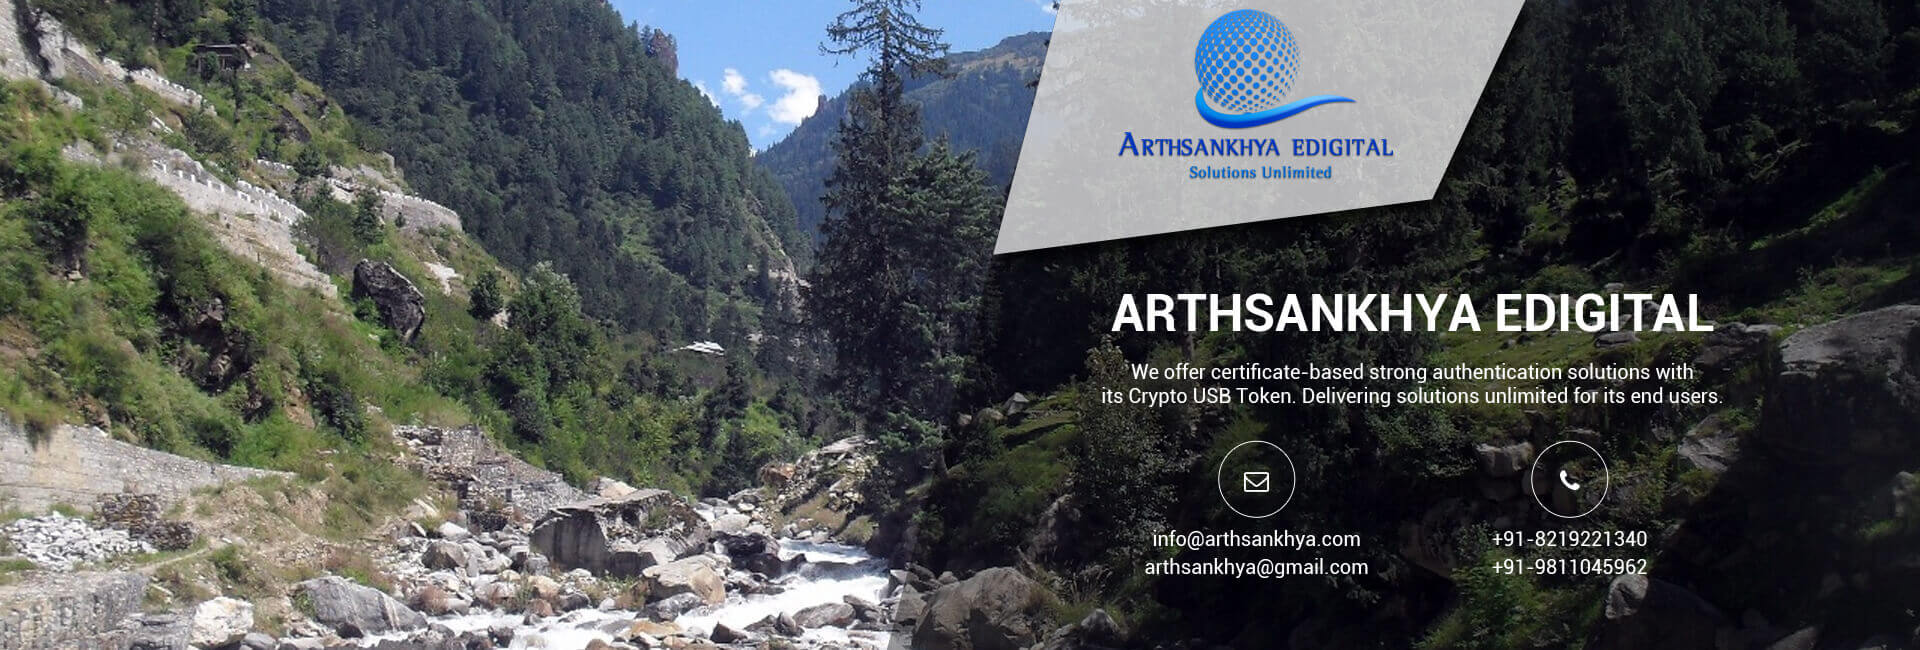 WELCOME TO ARTHSANKHYA EDIGITAL PRIVATE LIMITED